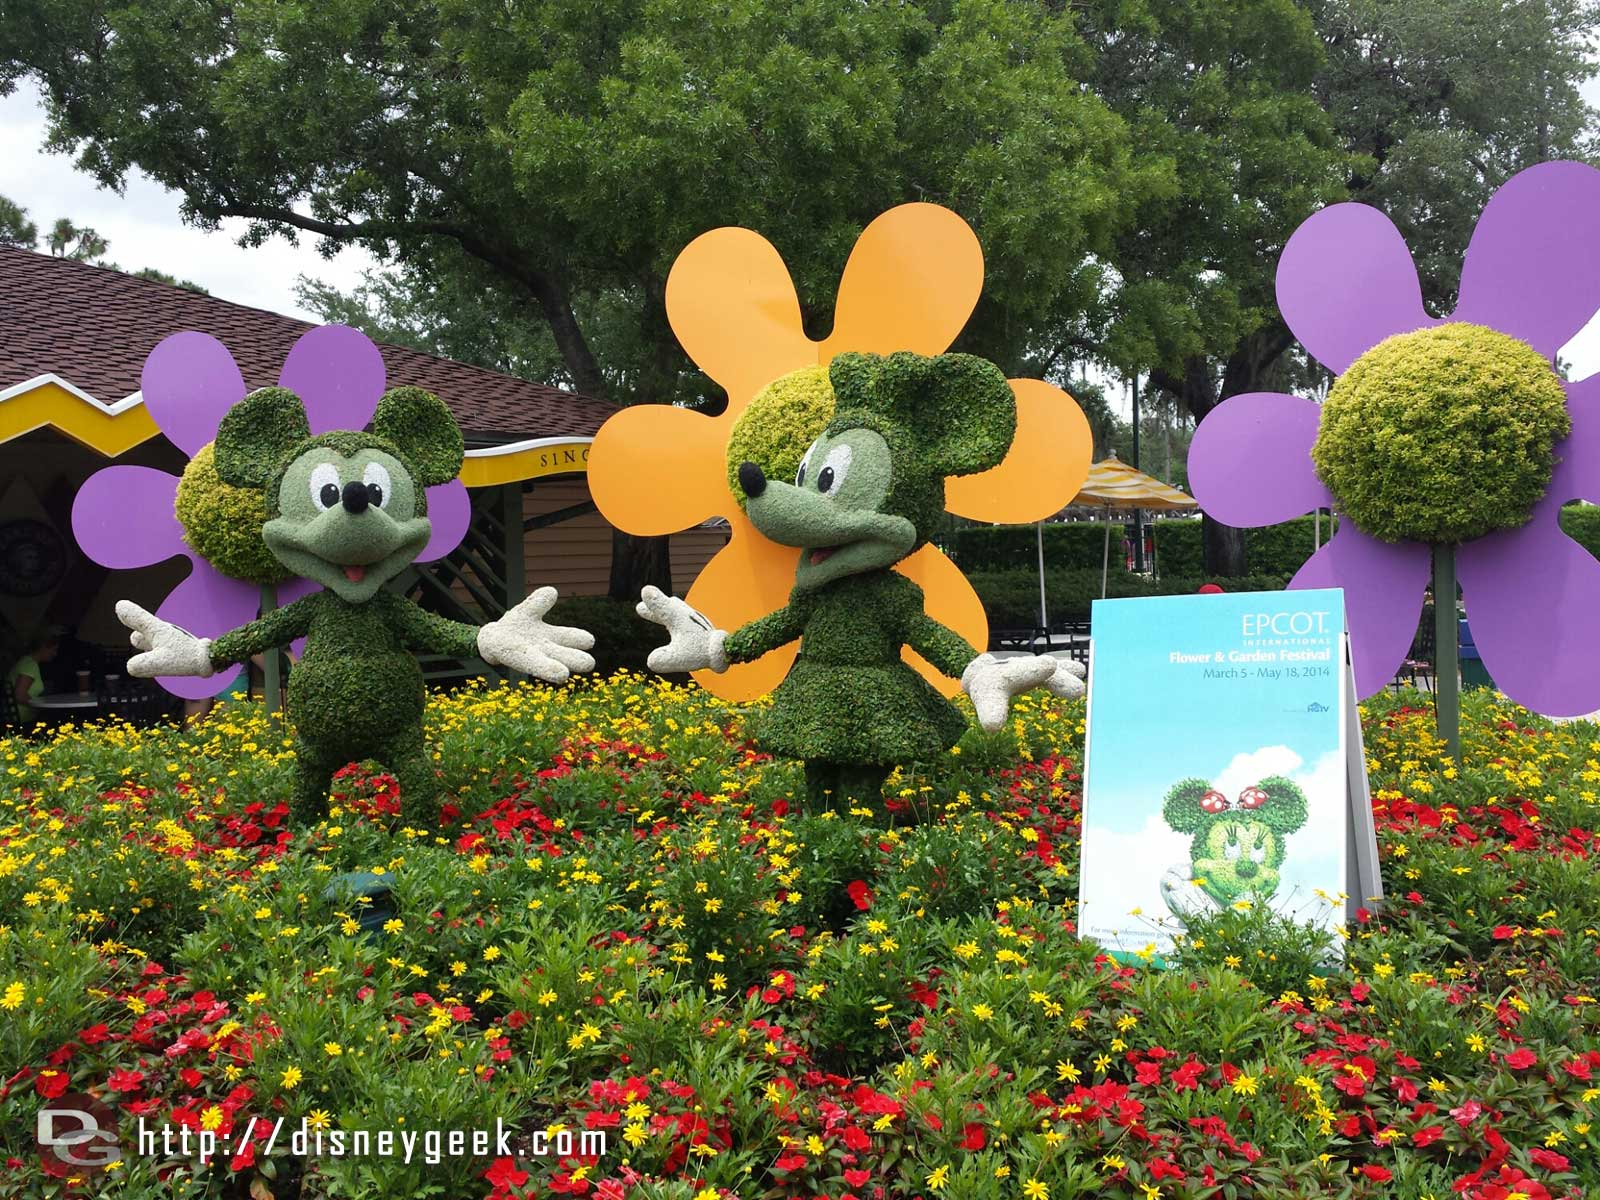 Mickey & Minnie topiaries advertising the Epcot F&G Festival @ Downtown Disney